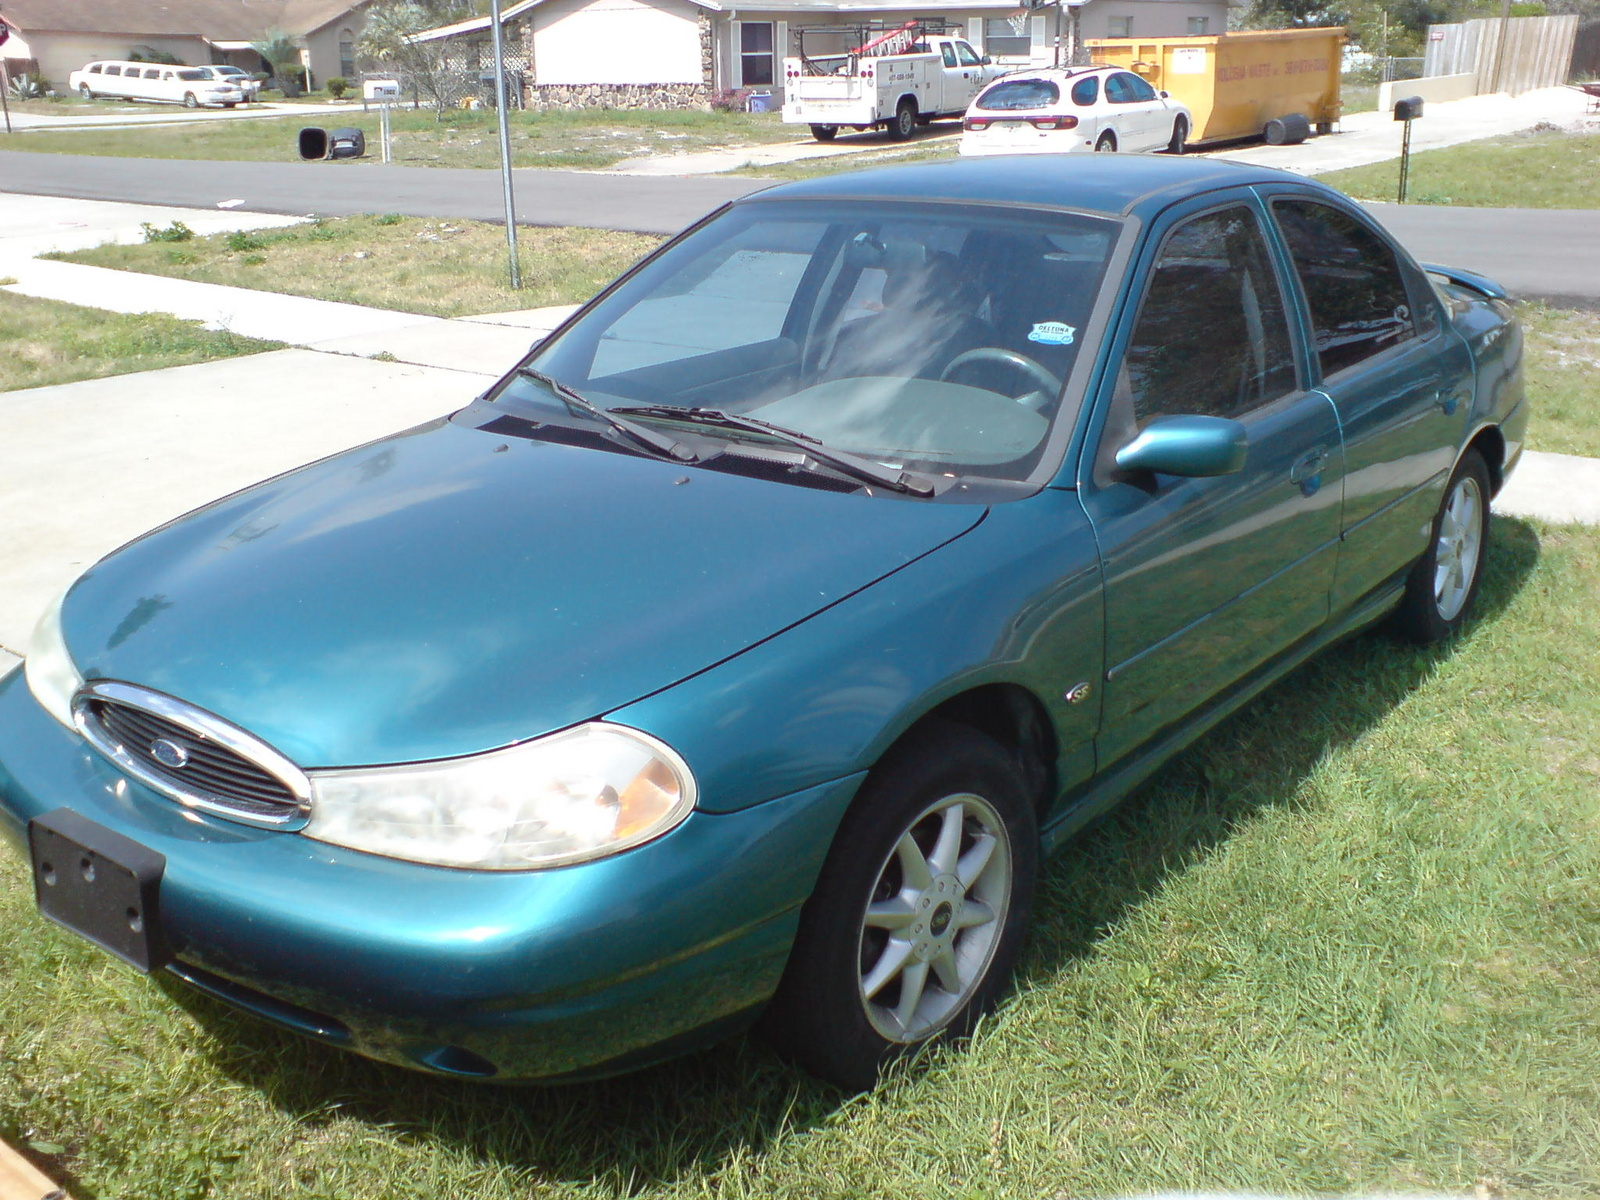 1998 Ford Contour 4 Dr SE Sedan picture